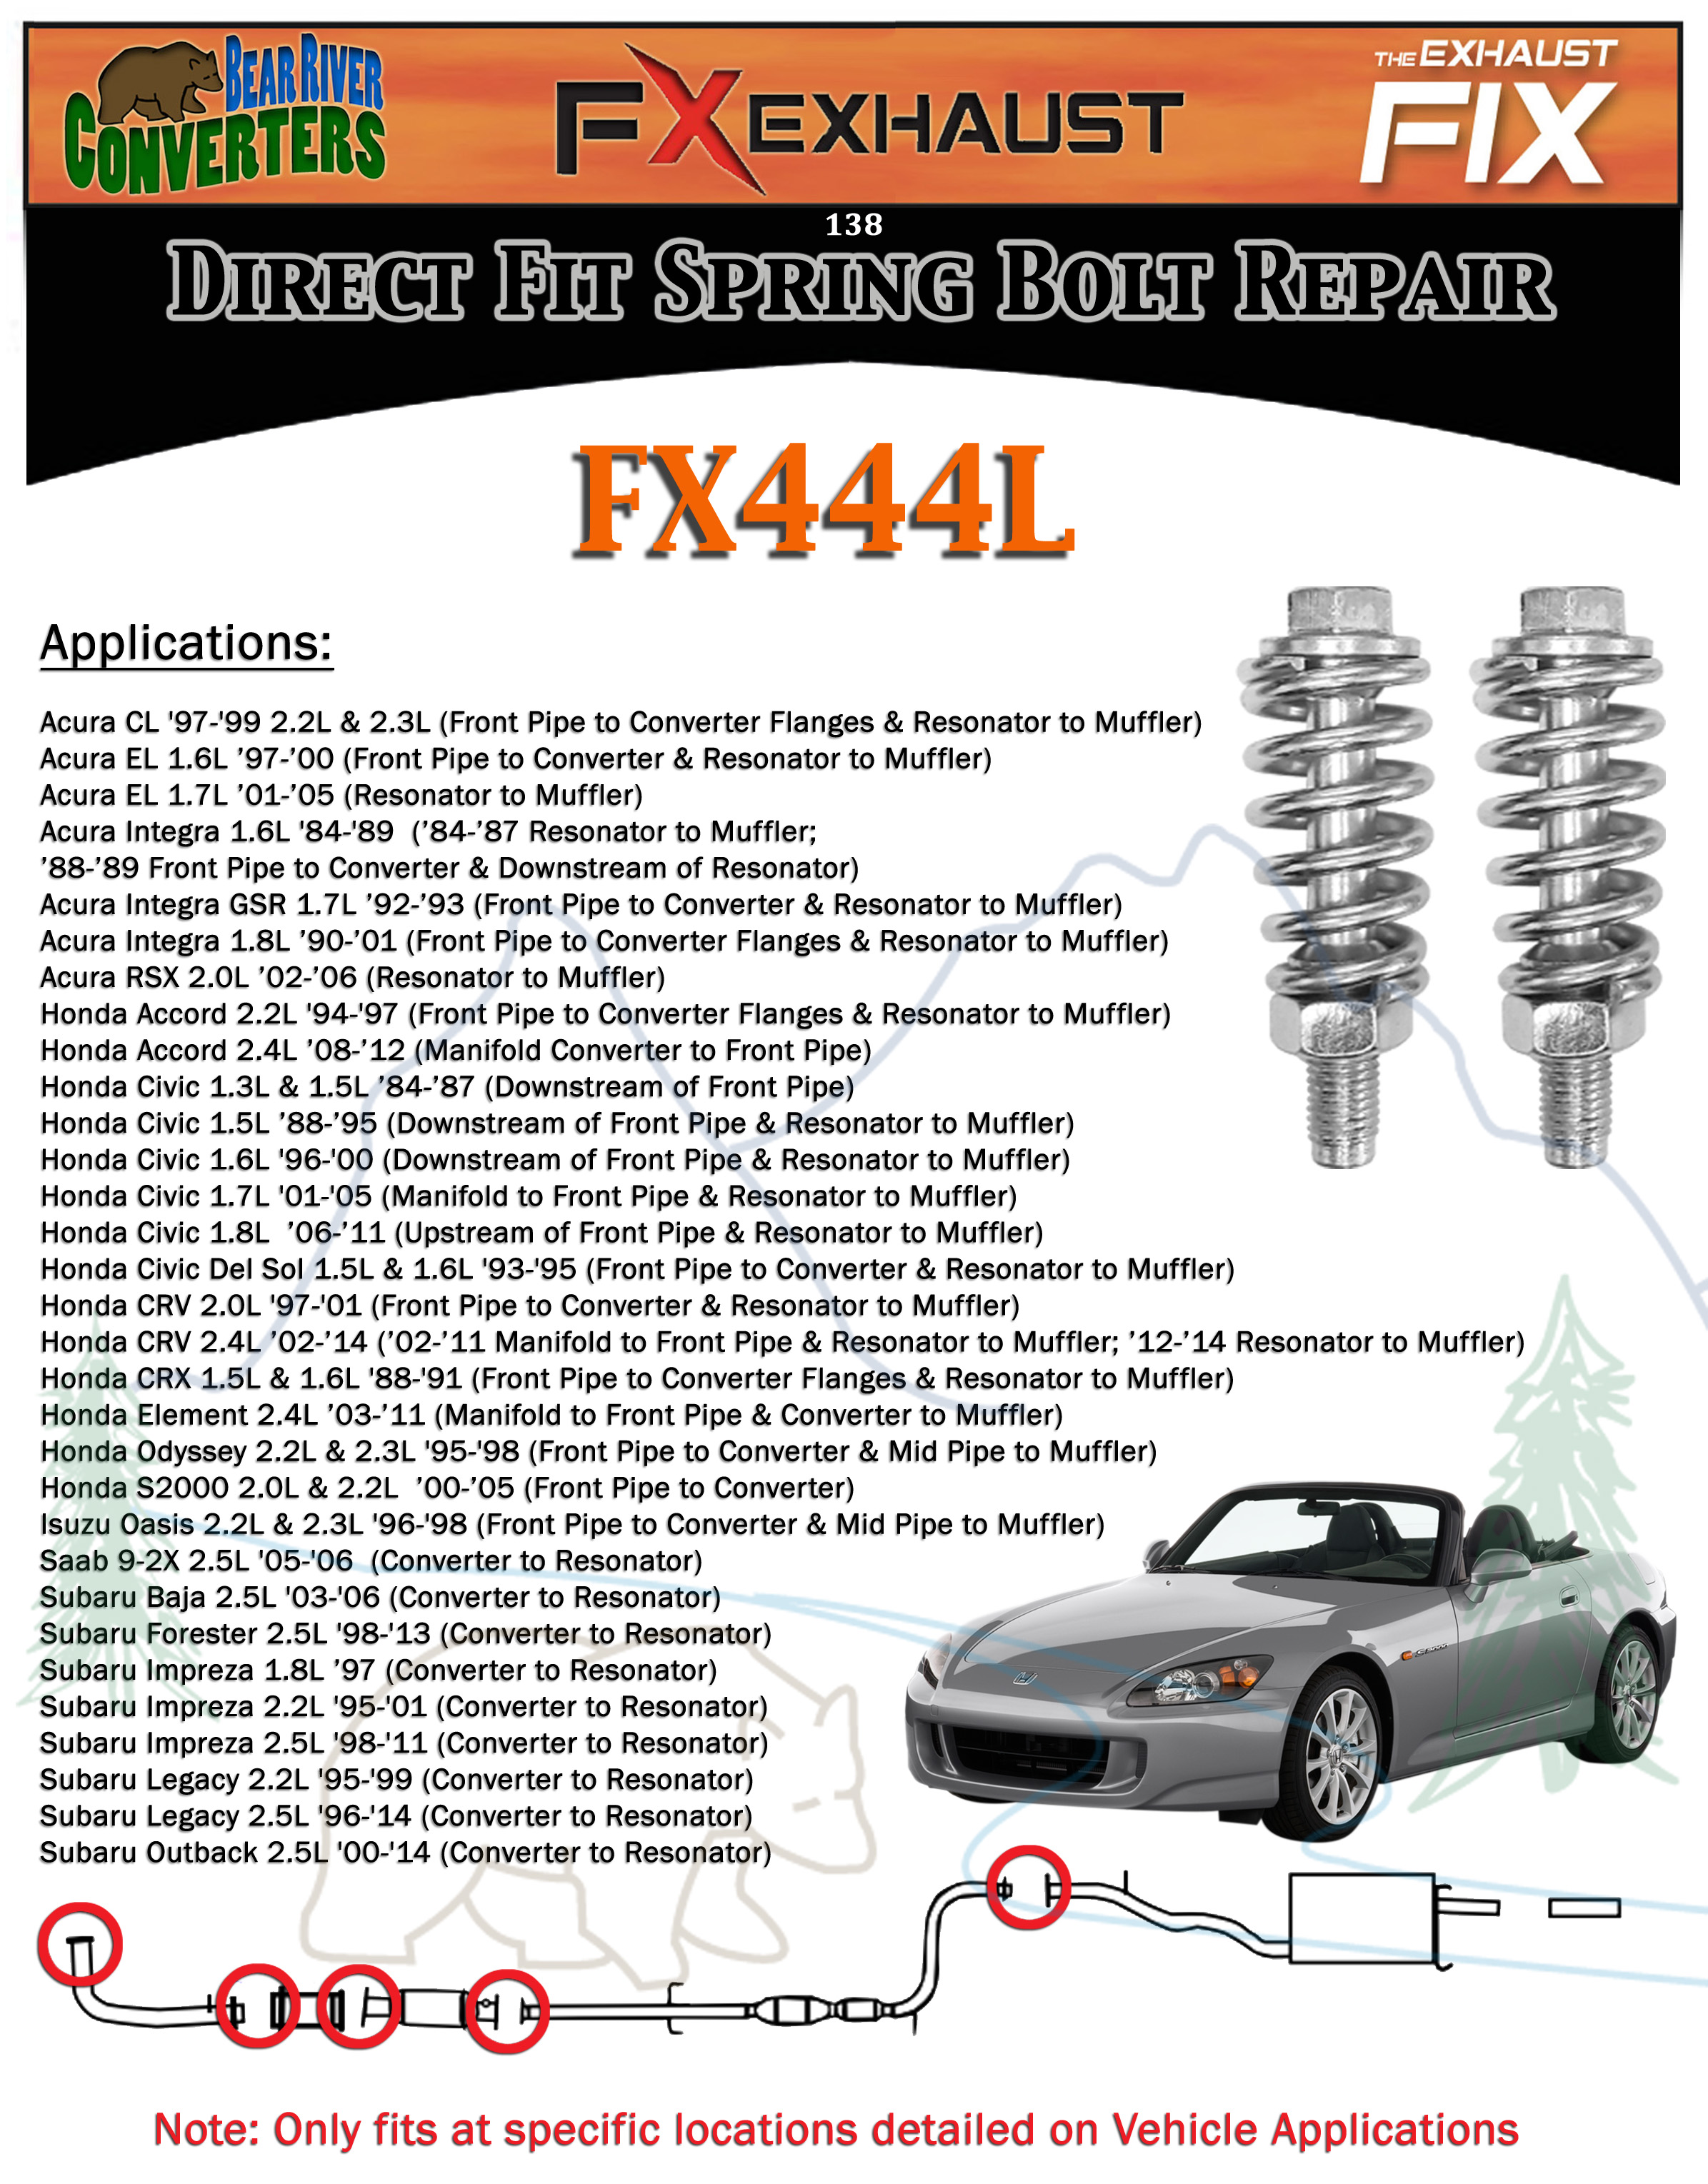 fx444l exhaust spring bolt stud nut hardware repair replacement rh ebay com 2004 Acura El MPG 1999 Acura El